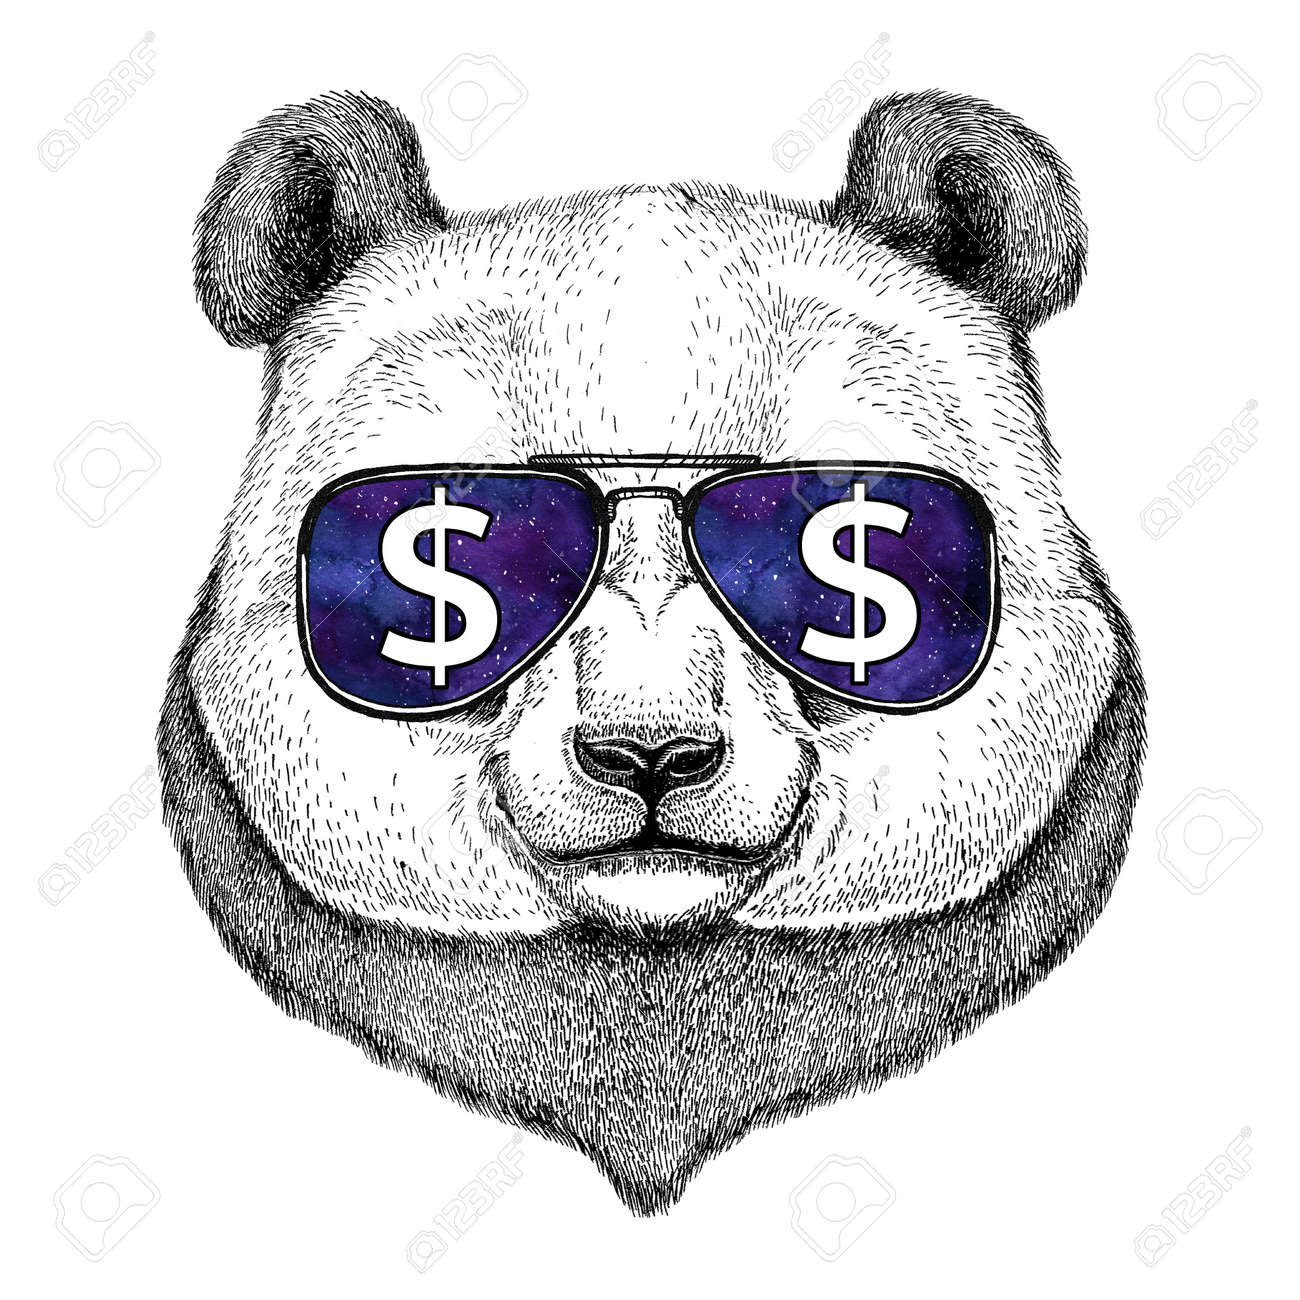 Panda bear, bamboo bear wearing glasses with dollar sign Illustration with wild animal for t-shirt, tattoo sketch, patch - 80729638